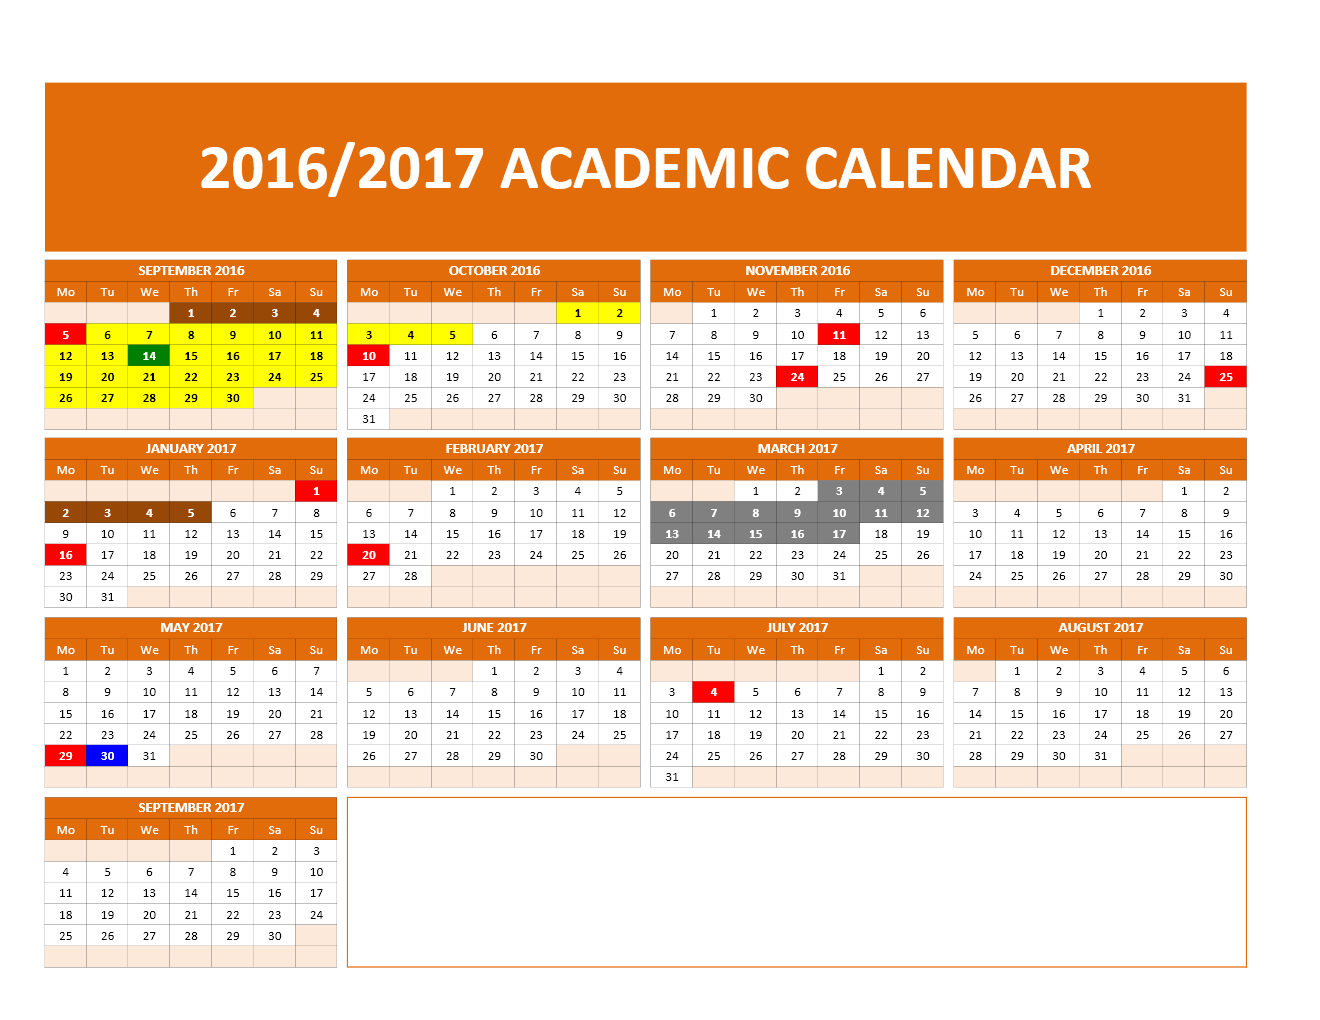 New School Academic Calendar Fall 2016 Academic Calendar 2016 2017 University Of South Alabama 3 Month Calendar Excel Calendar Template 2016